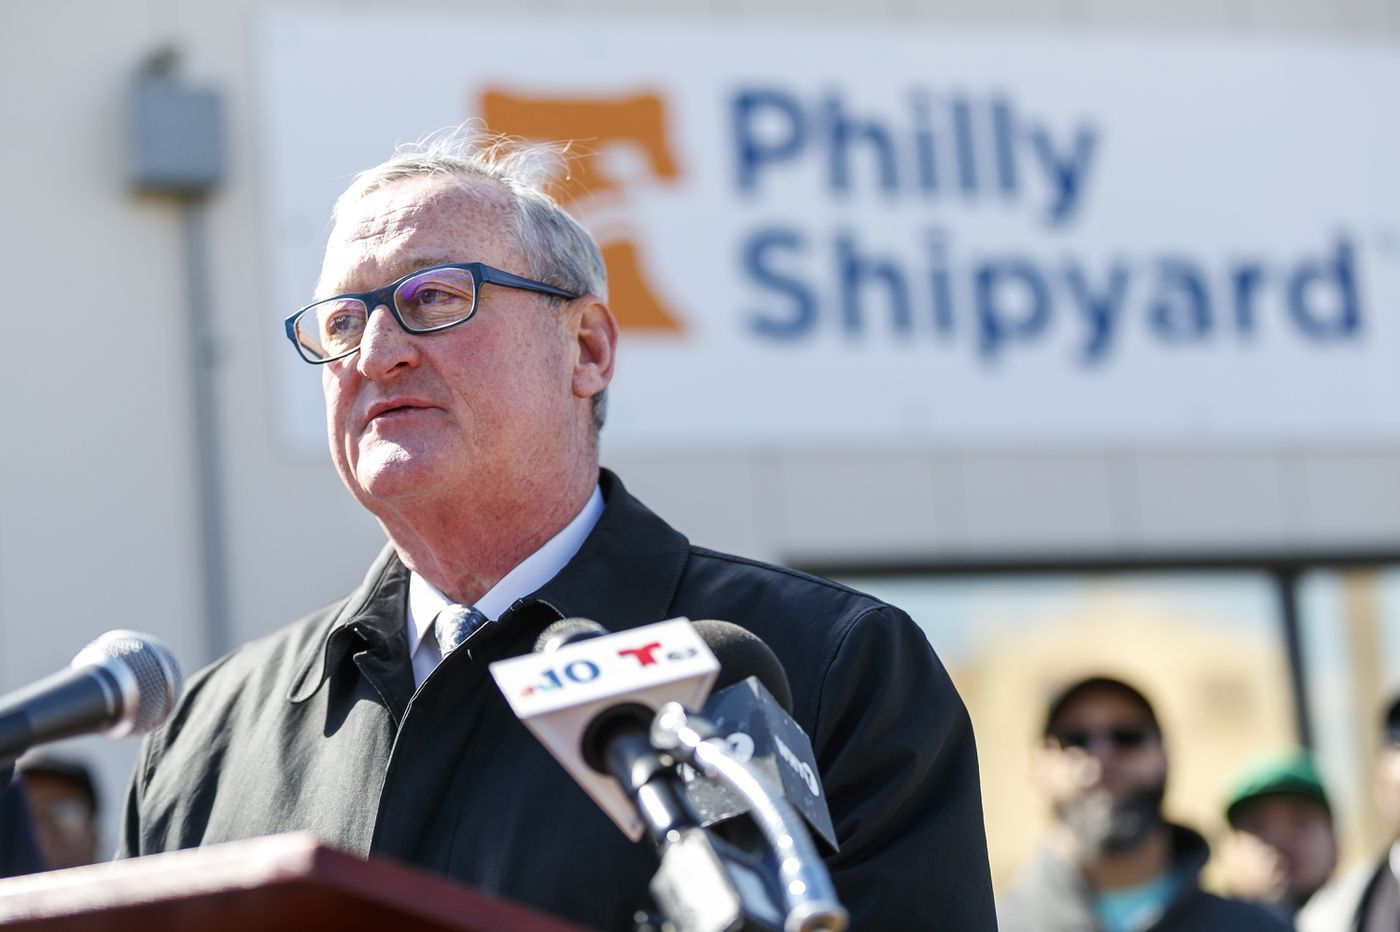 With six weeks until the primary, Philly pols scramble for campaign cash